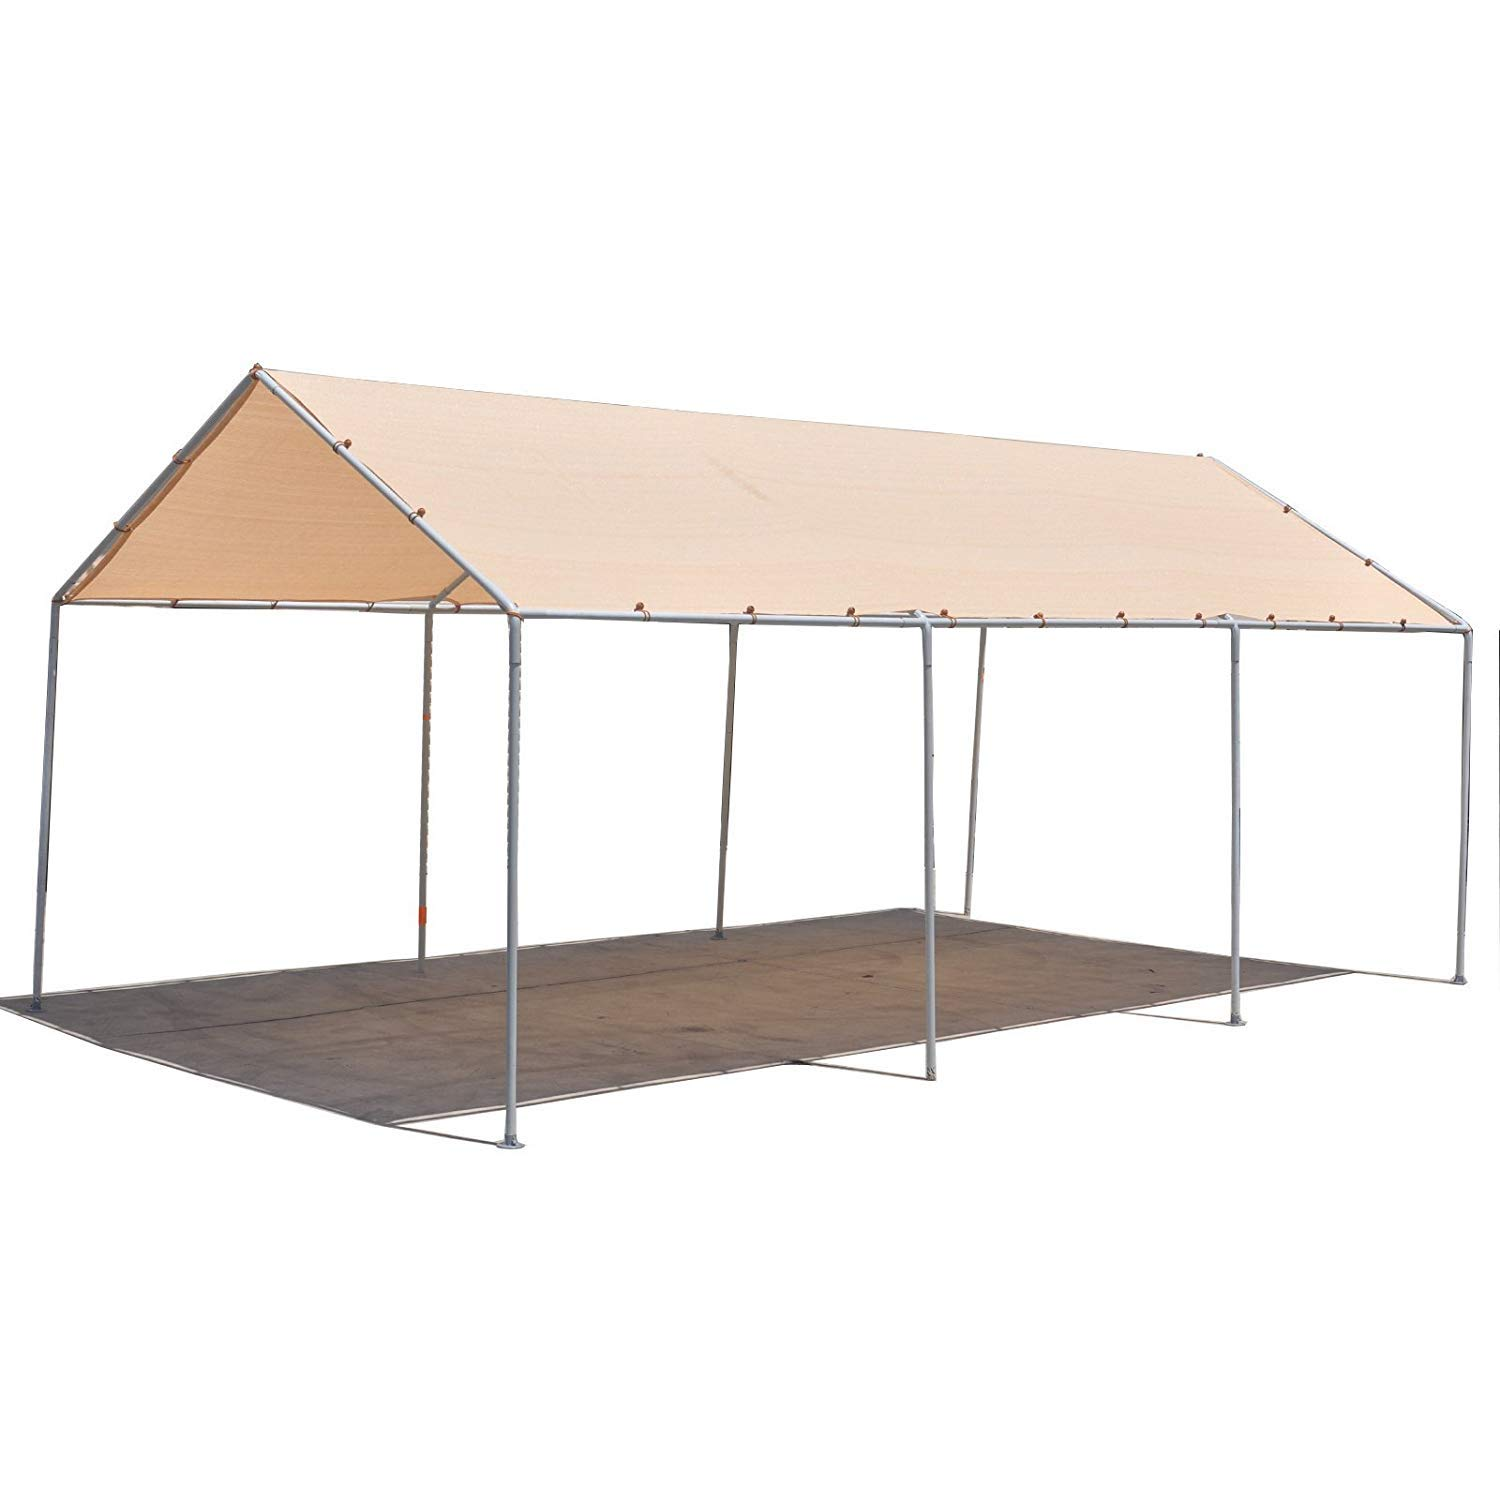 Alion Home Carport Canopy Replacement Permeable Sun Shade Cover for Low & Medium Peak(Frame Not Included) (10' x 7', Beige)